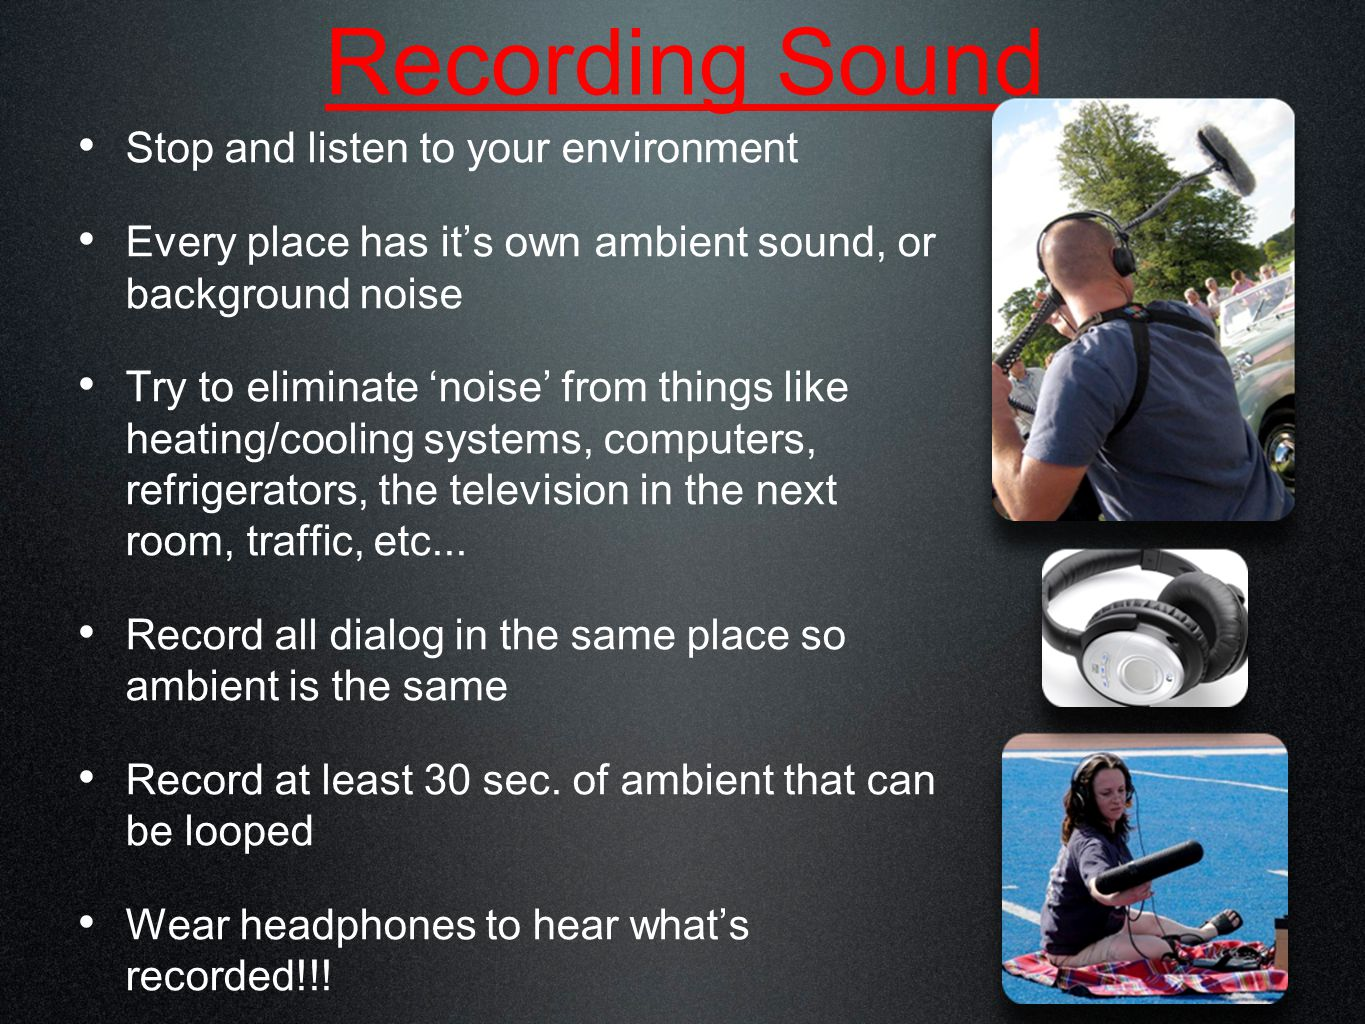 Recording Sound Stop and listen to your environment Every place has it's own ambient sound, or background noise Try to eliminate 'noise' from things like heating/cooling systems, computers, refrigerators, the television in the next room, traffic, etc...